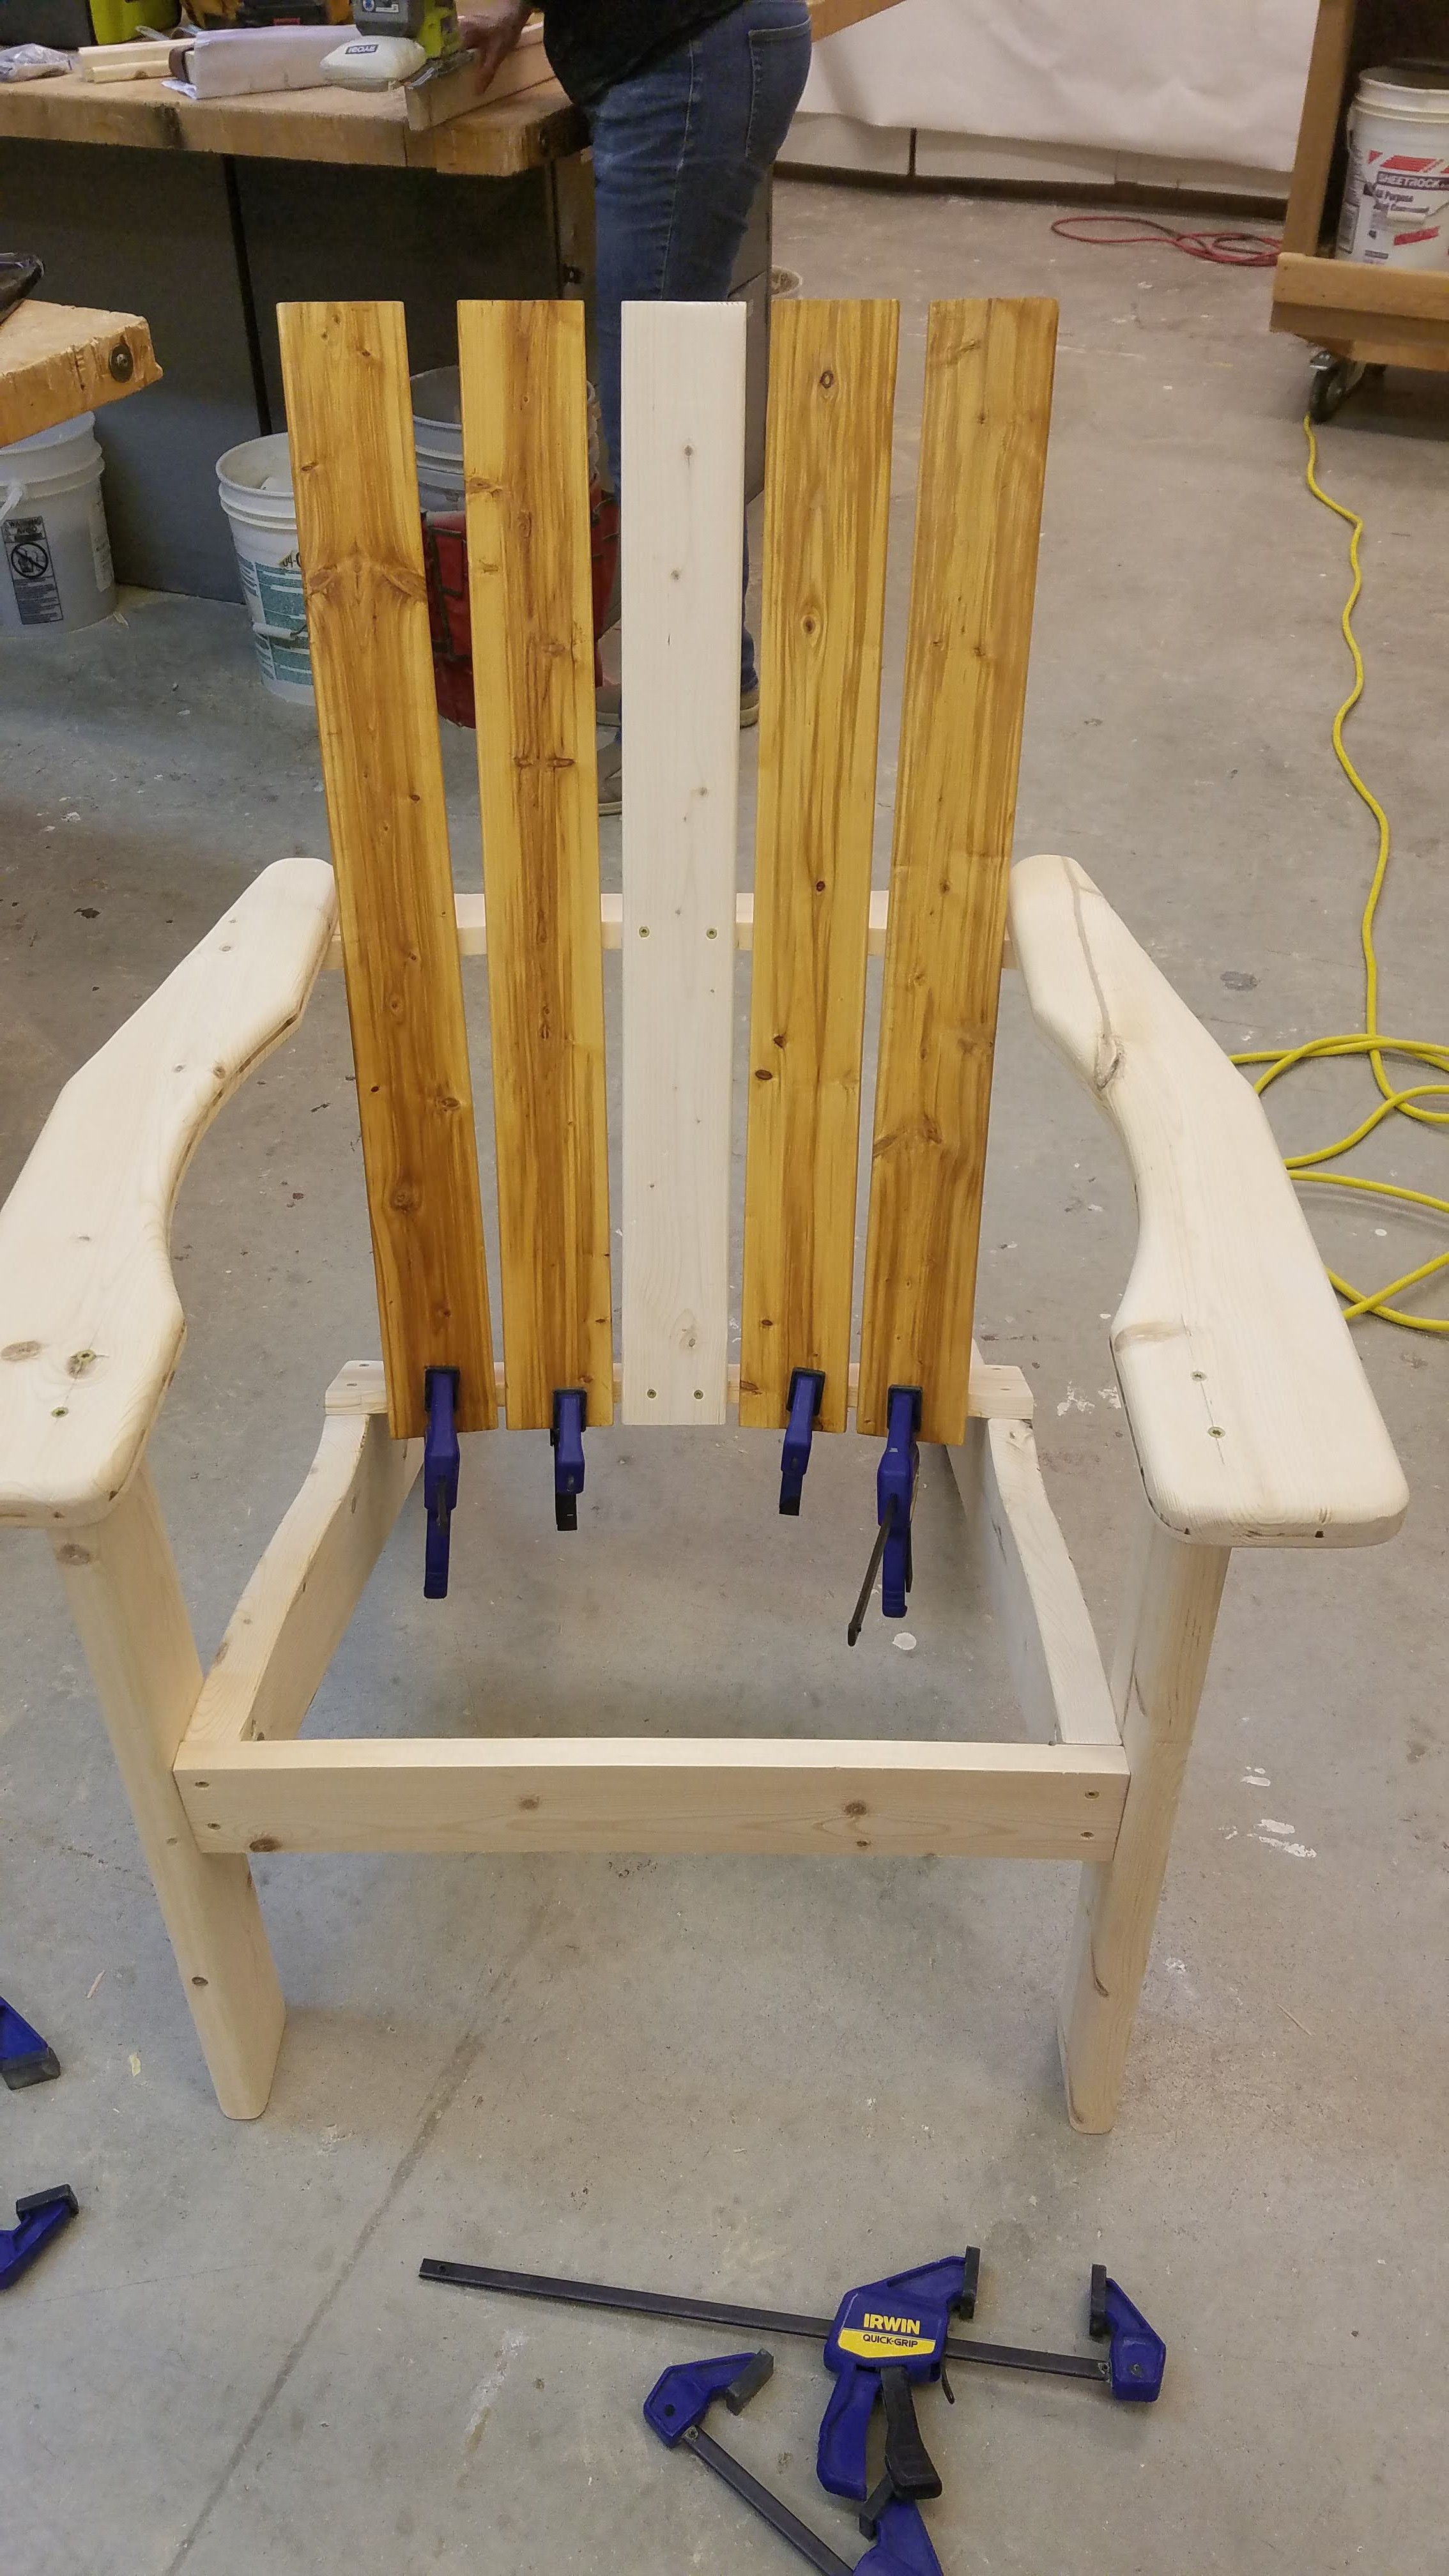 adrirondack chair assembly, clamps, pine, community college